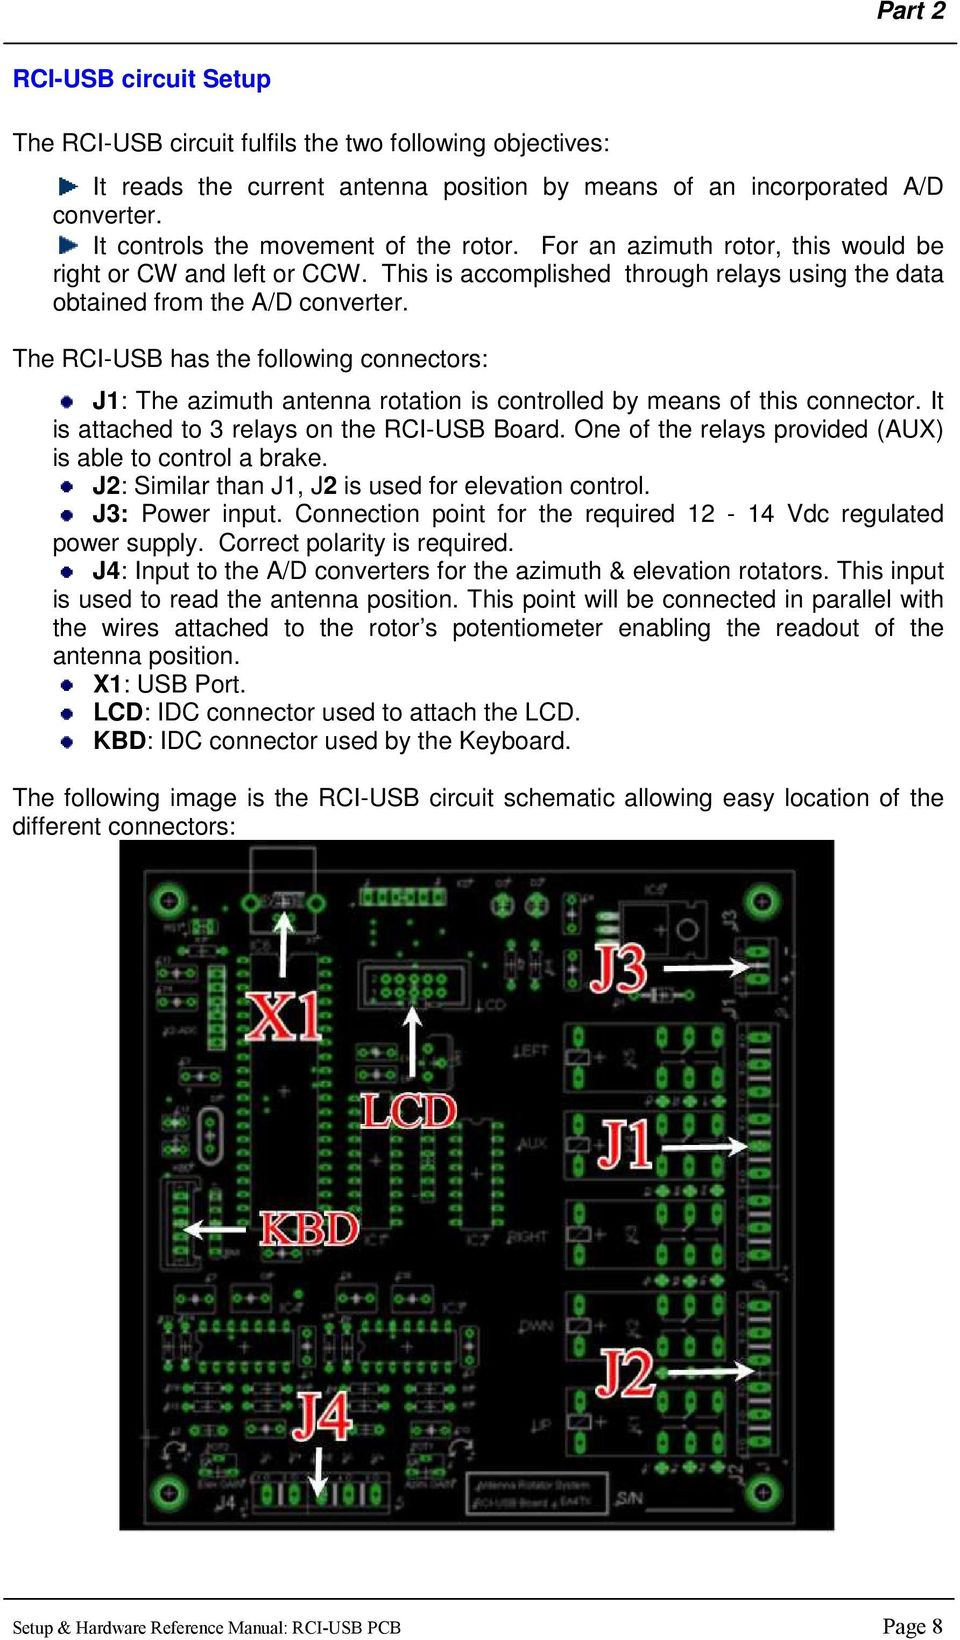 Antenna Rotator System Pdf Usb Schematic Symbol The Rci Has Following Connectors J1 Azimuth Rotation Is